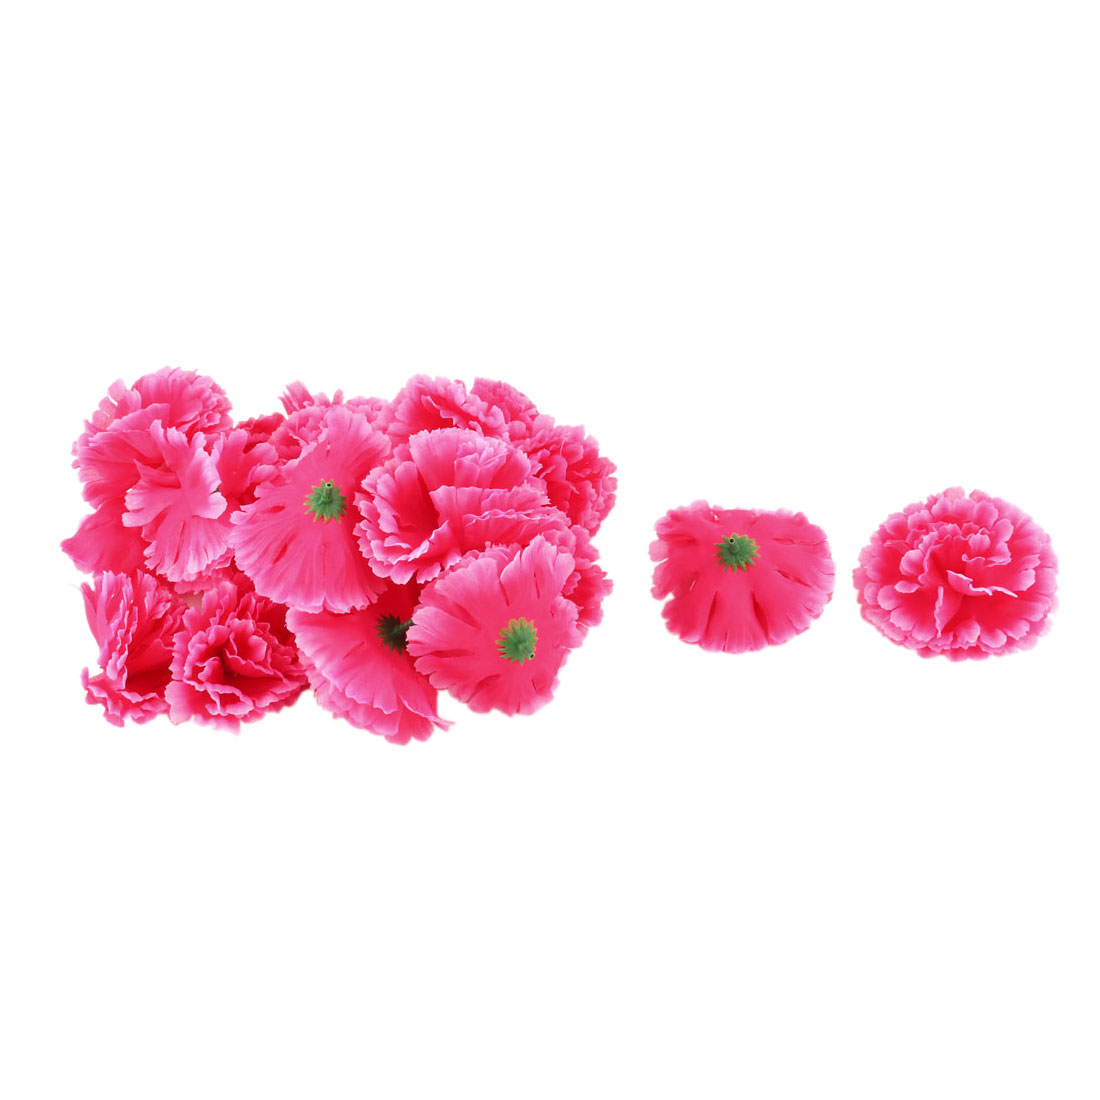 Wedding Fabric Artificial Carnation Flower Heads DIY Craft Decor Fuchsia 20pcs